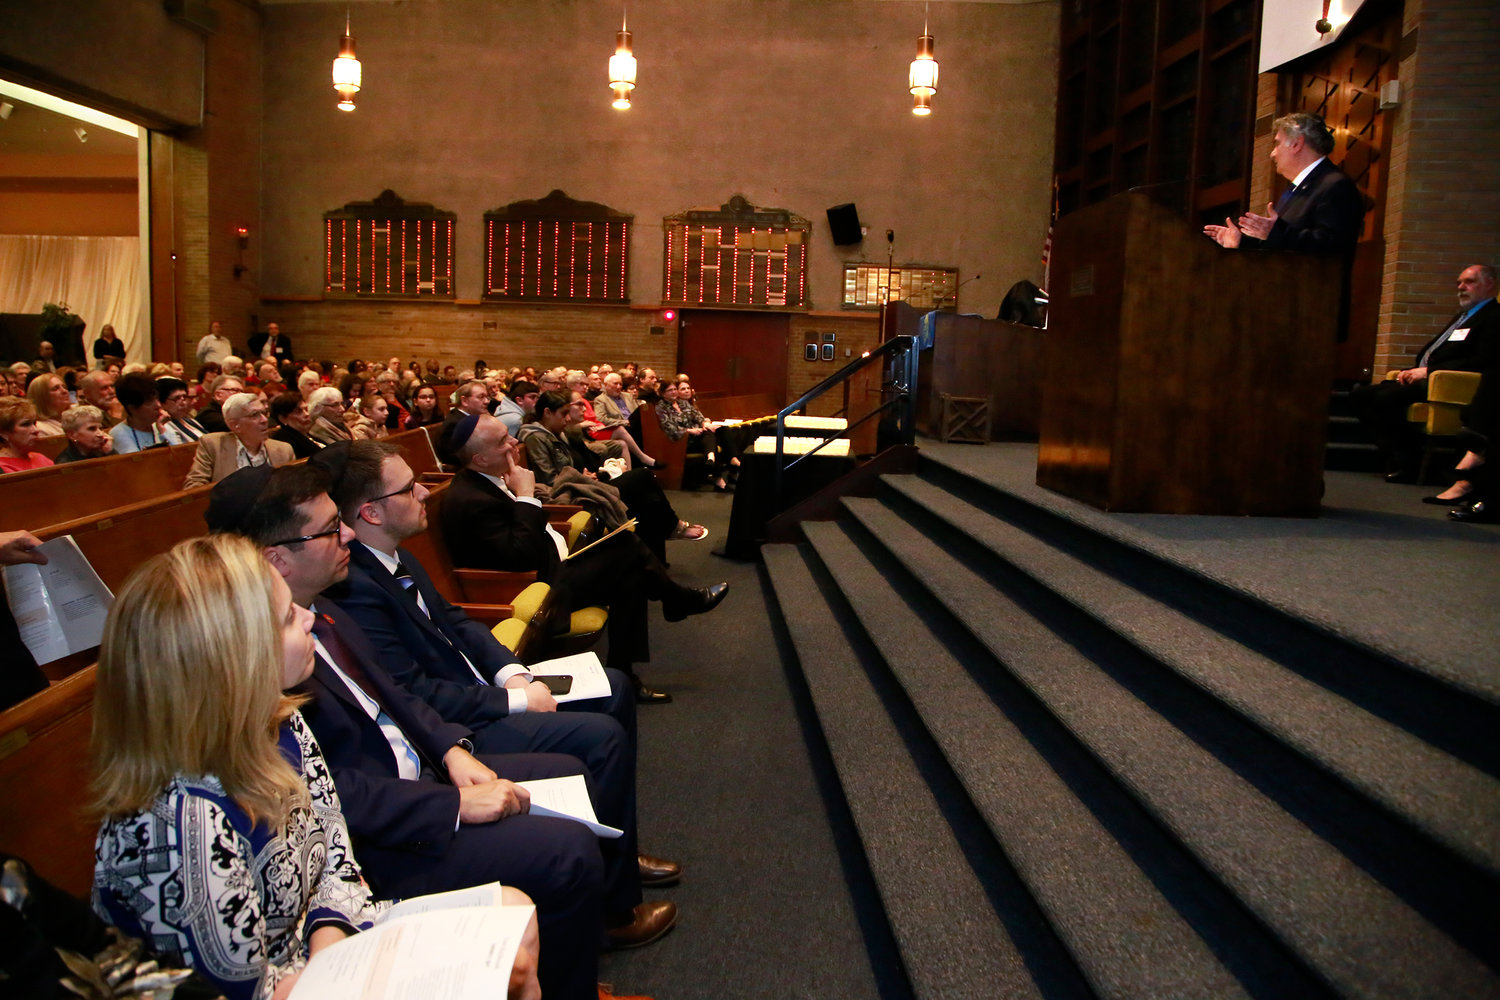 Rabbi Joseph Potasnik, whose parents were Holocaust survivors, was the guest speaker at a Holocaust Remembrance Day ceremony at Congregation Shaaray Shalom in West Hempstead on May 1.